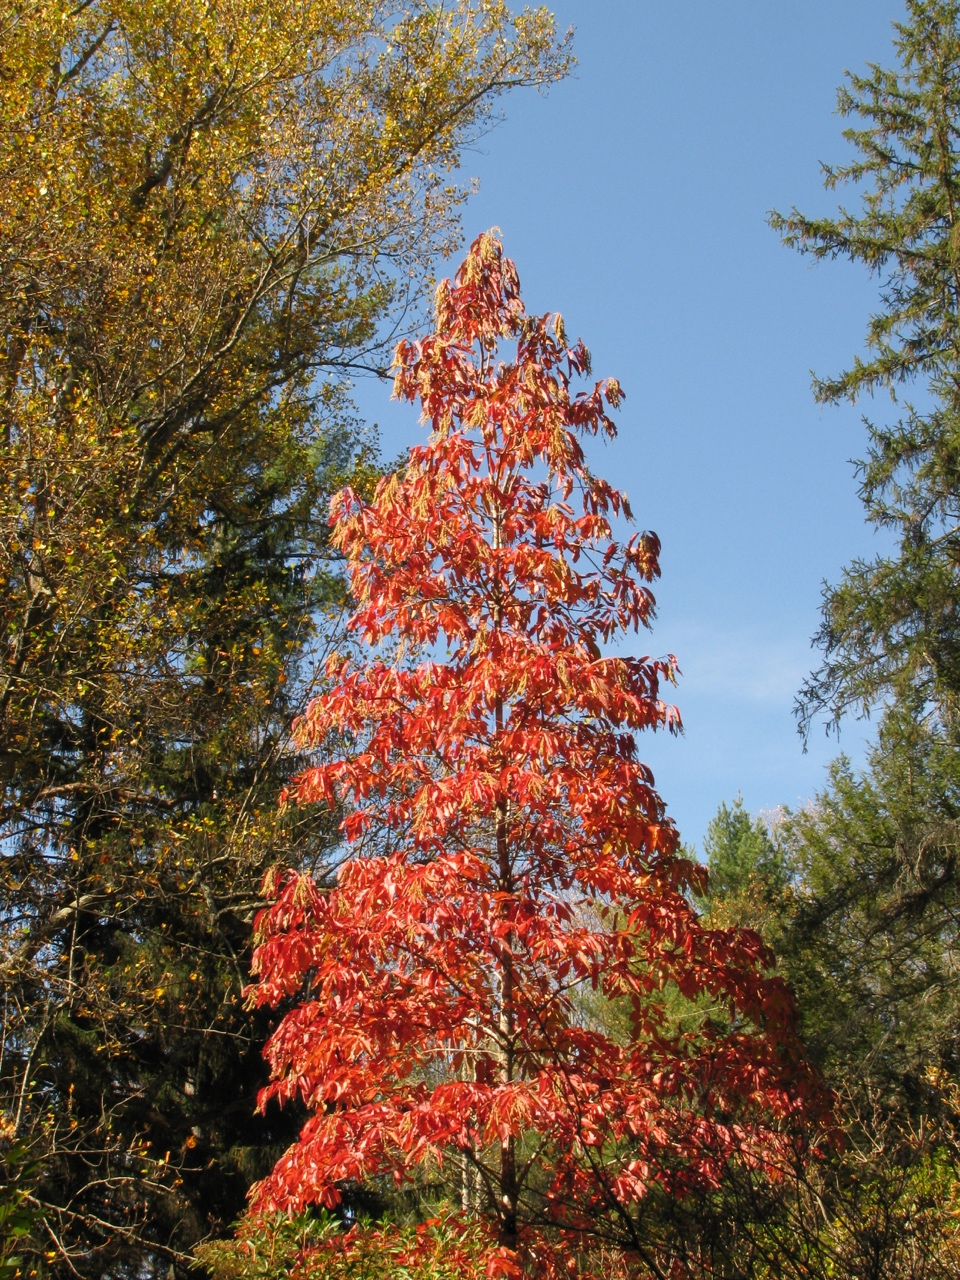 The Scientific Name is Oxydendrum arboreum. You will likely hear them called Sourwood, Sorrel-tree. This picture shows the Spectacular Fall color of Oxydendrum arboreum